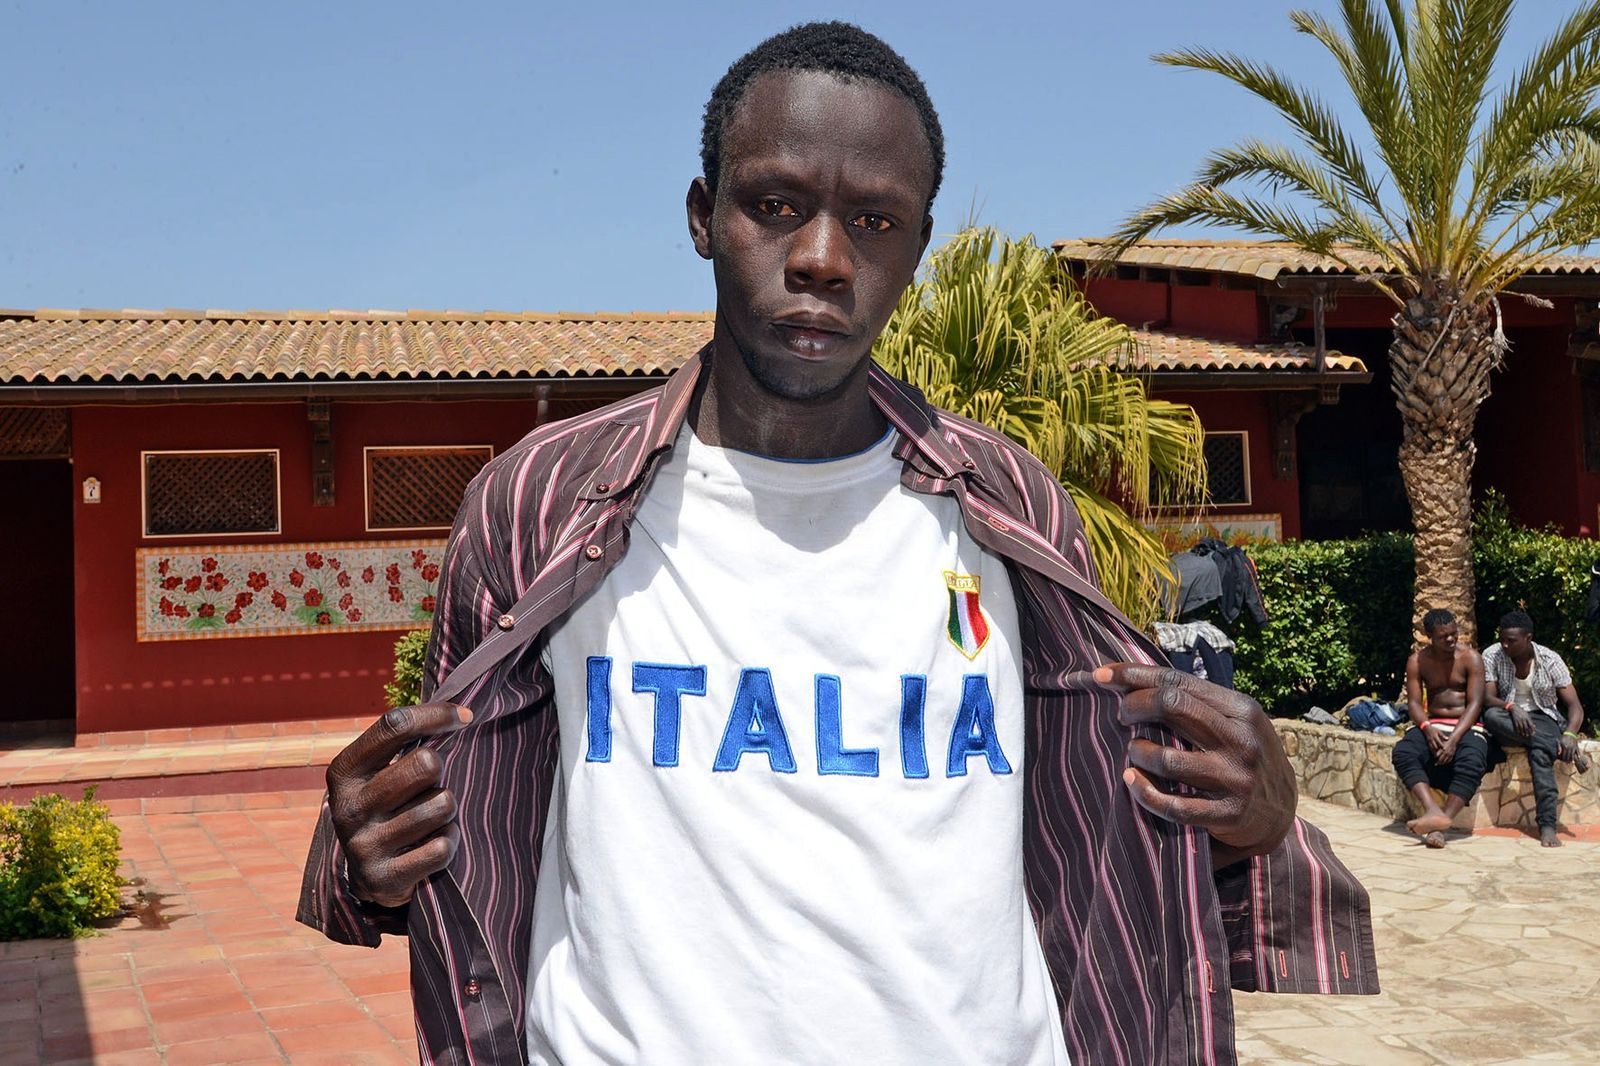 ITALY-IMMIGRATION-CENTER